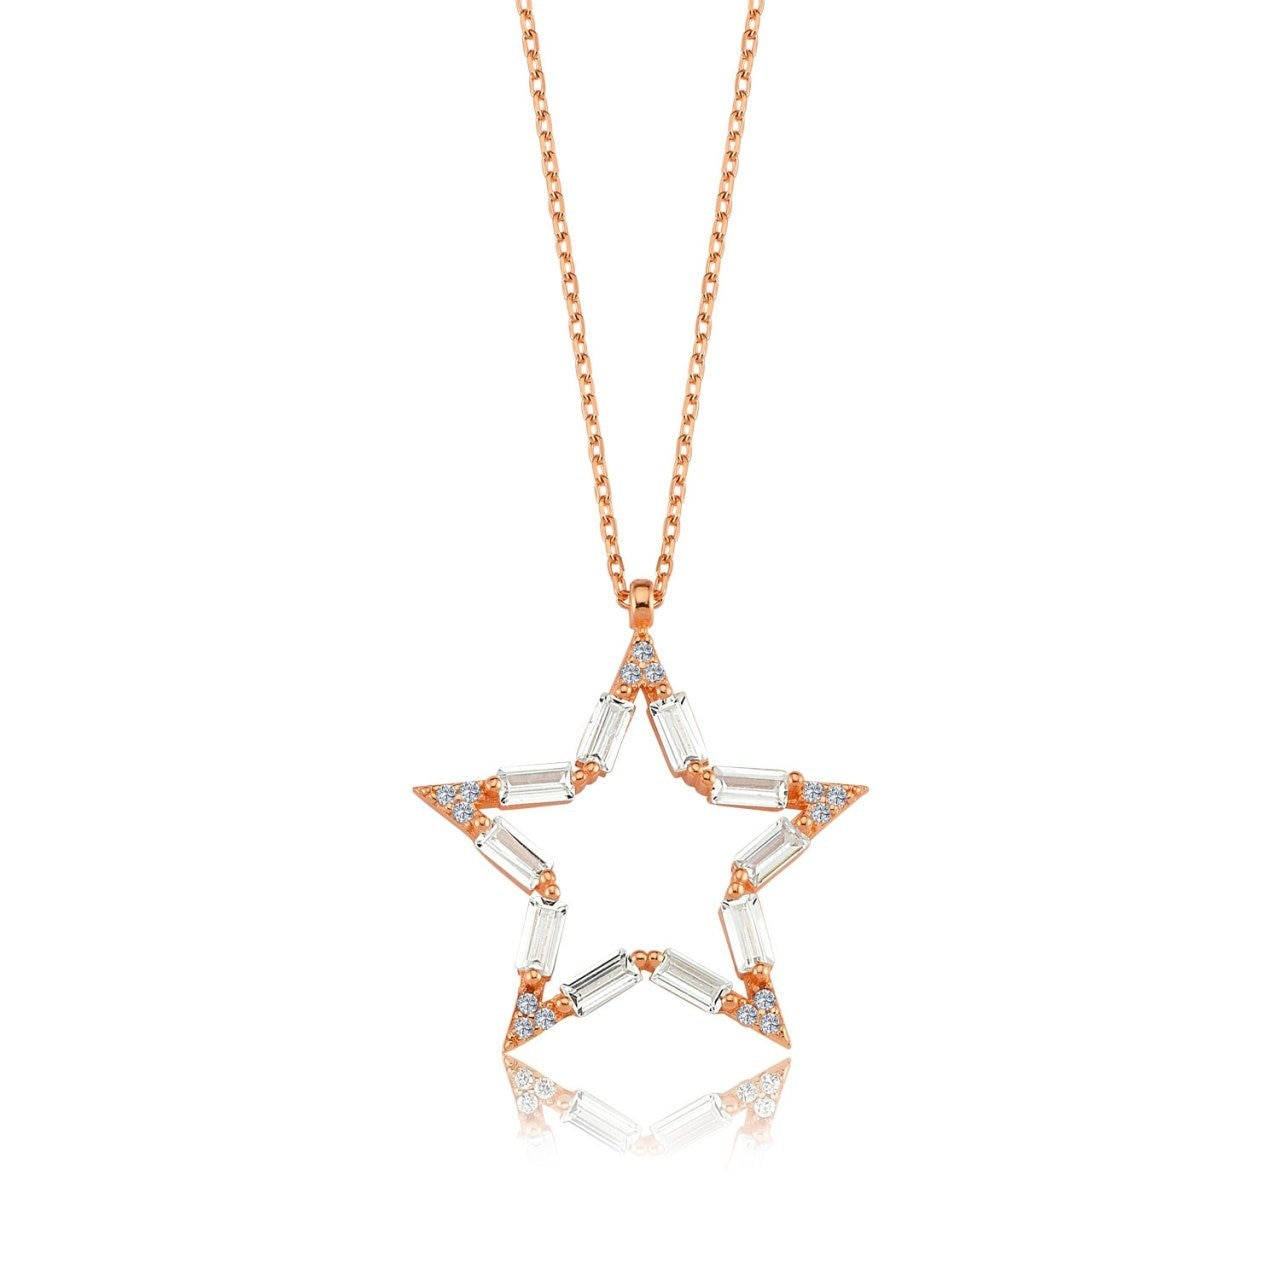 Trendy For Woman 925 Summer Fashion Jewelry Zircon Gift Necklace Cute Accessories High Quality Retro Crystal Pendant Swarovski